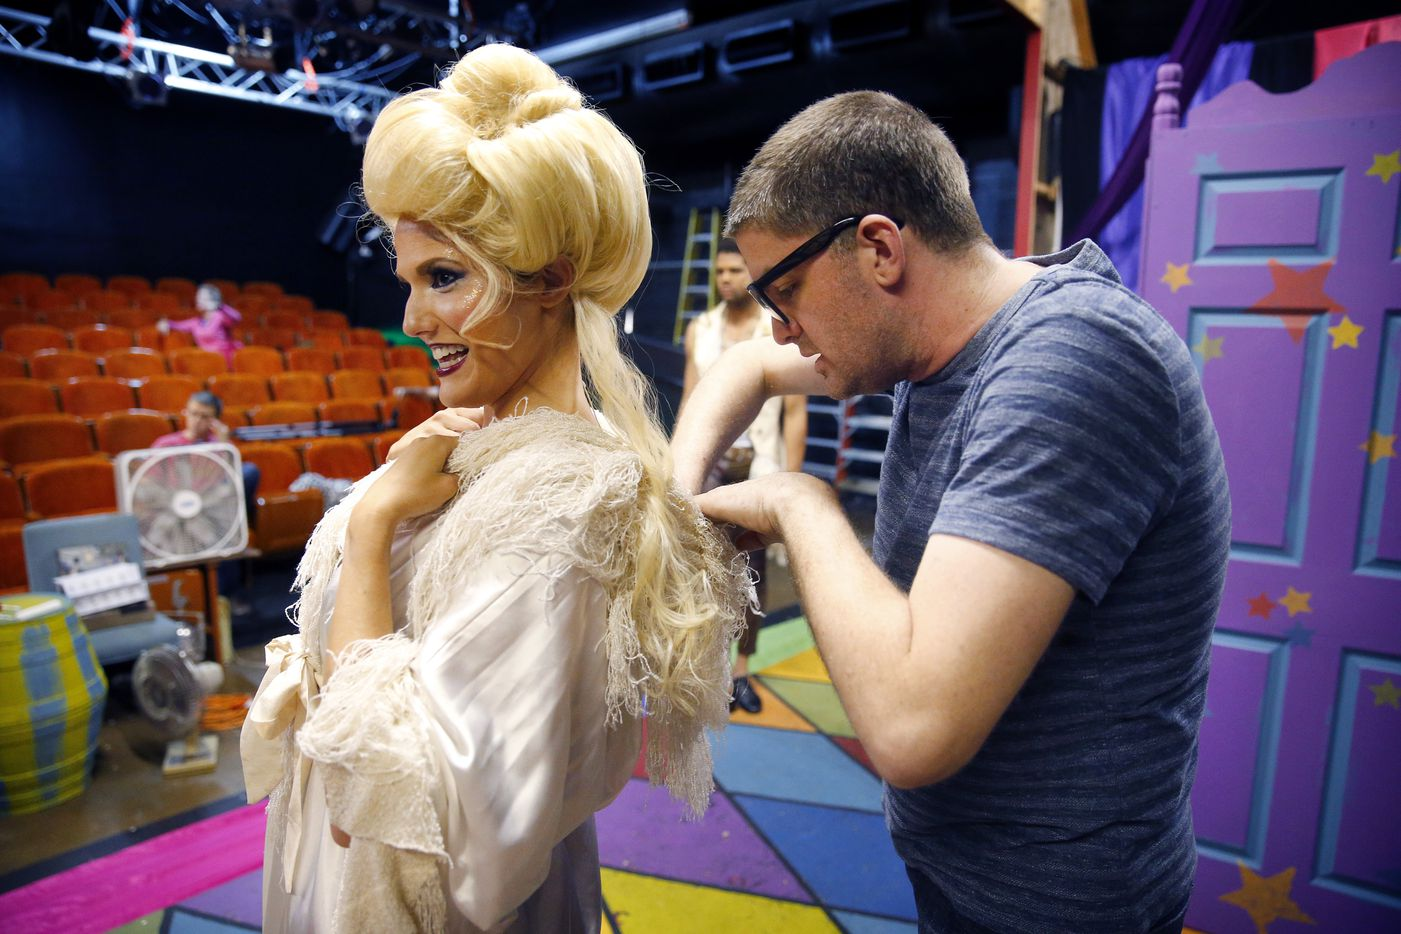 Director Derek Whitener (right) tries to make a fitting adjustment for Kim Borge Swarner (Fastrada) before a dress rehearsal.